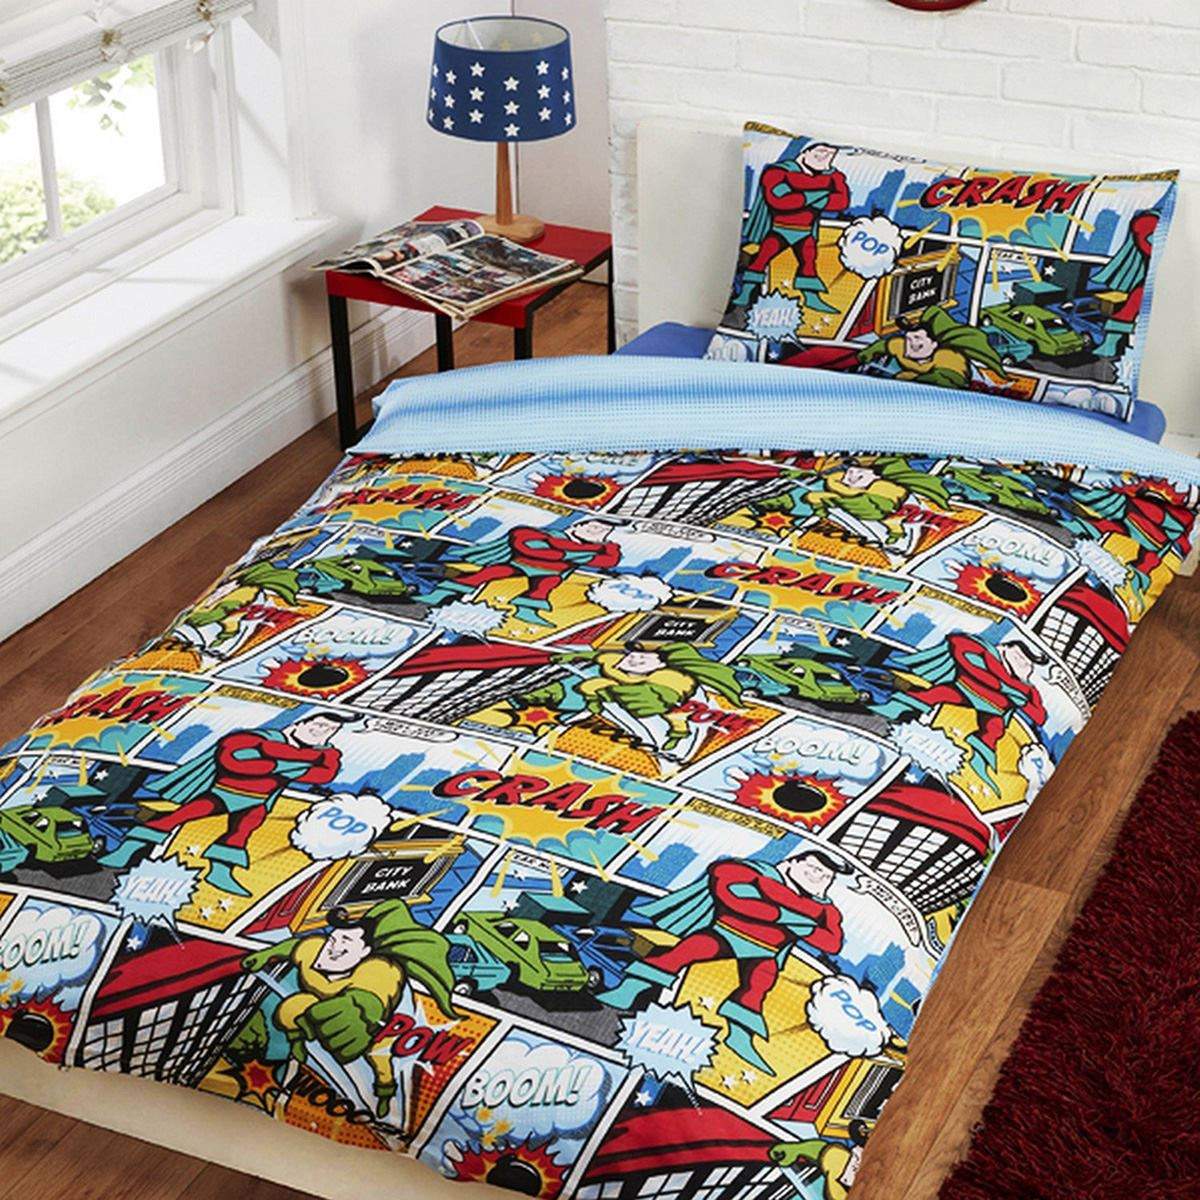 Design Comic Book Bedding character and themed single duvet cover kids bedding sets avengers bedding